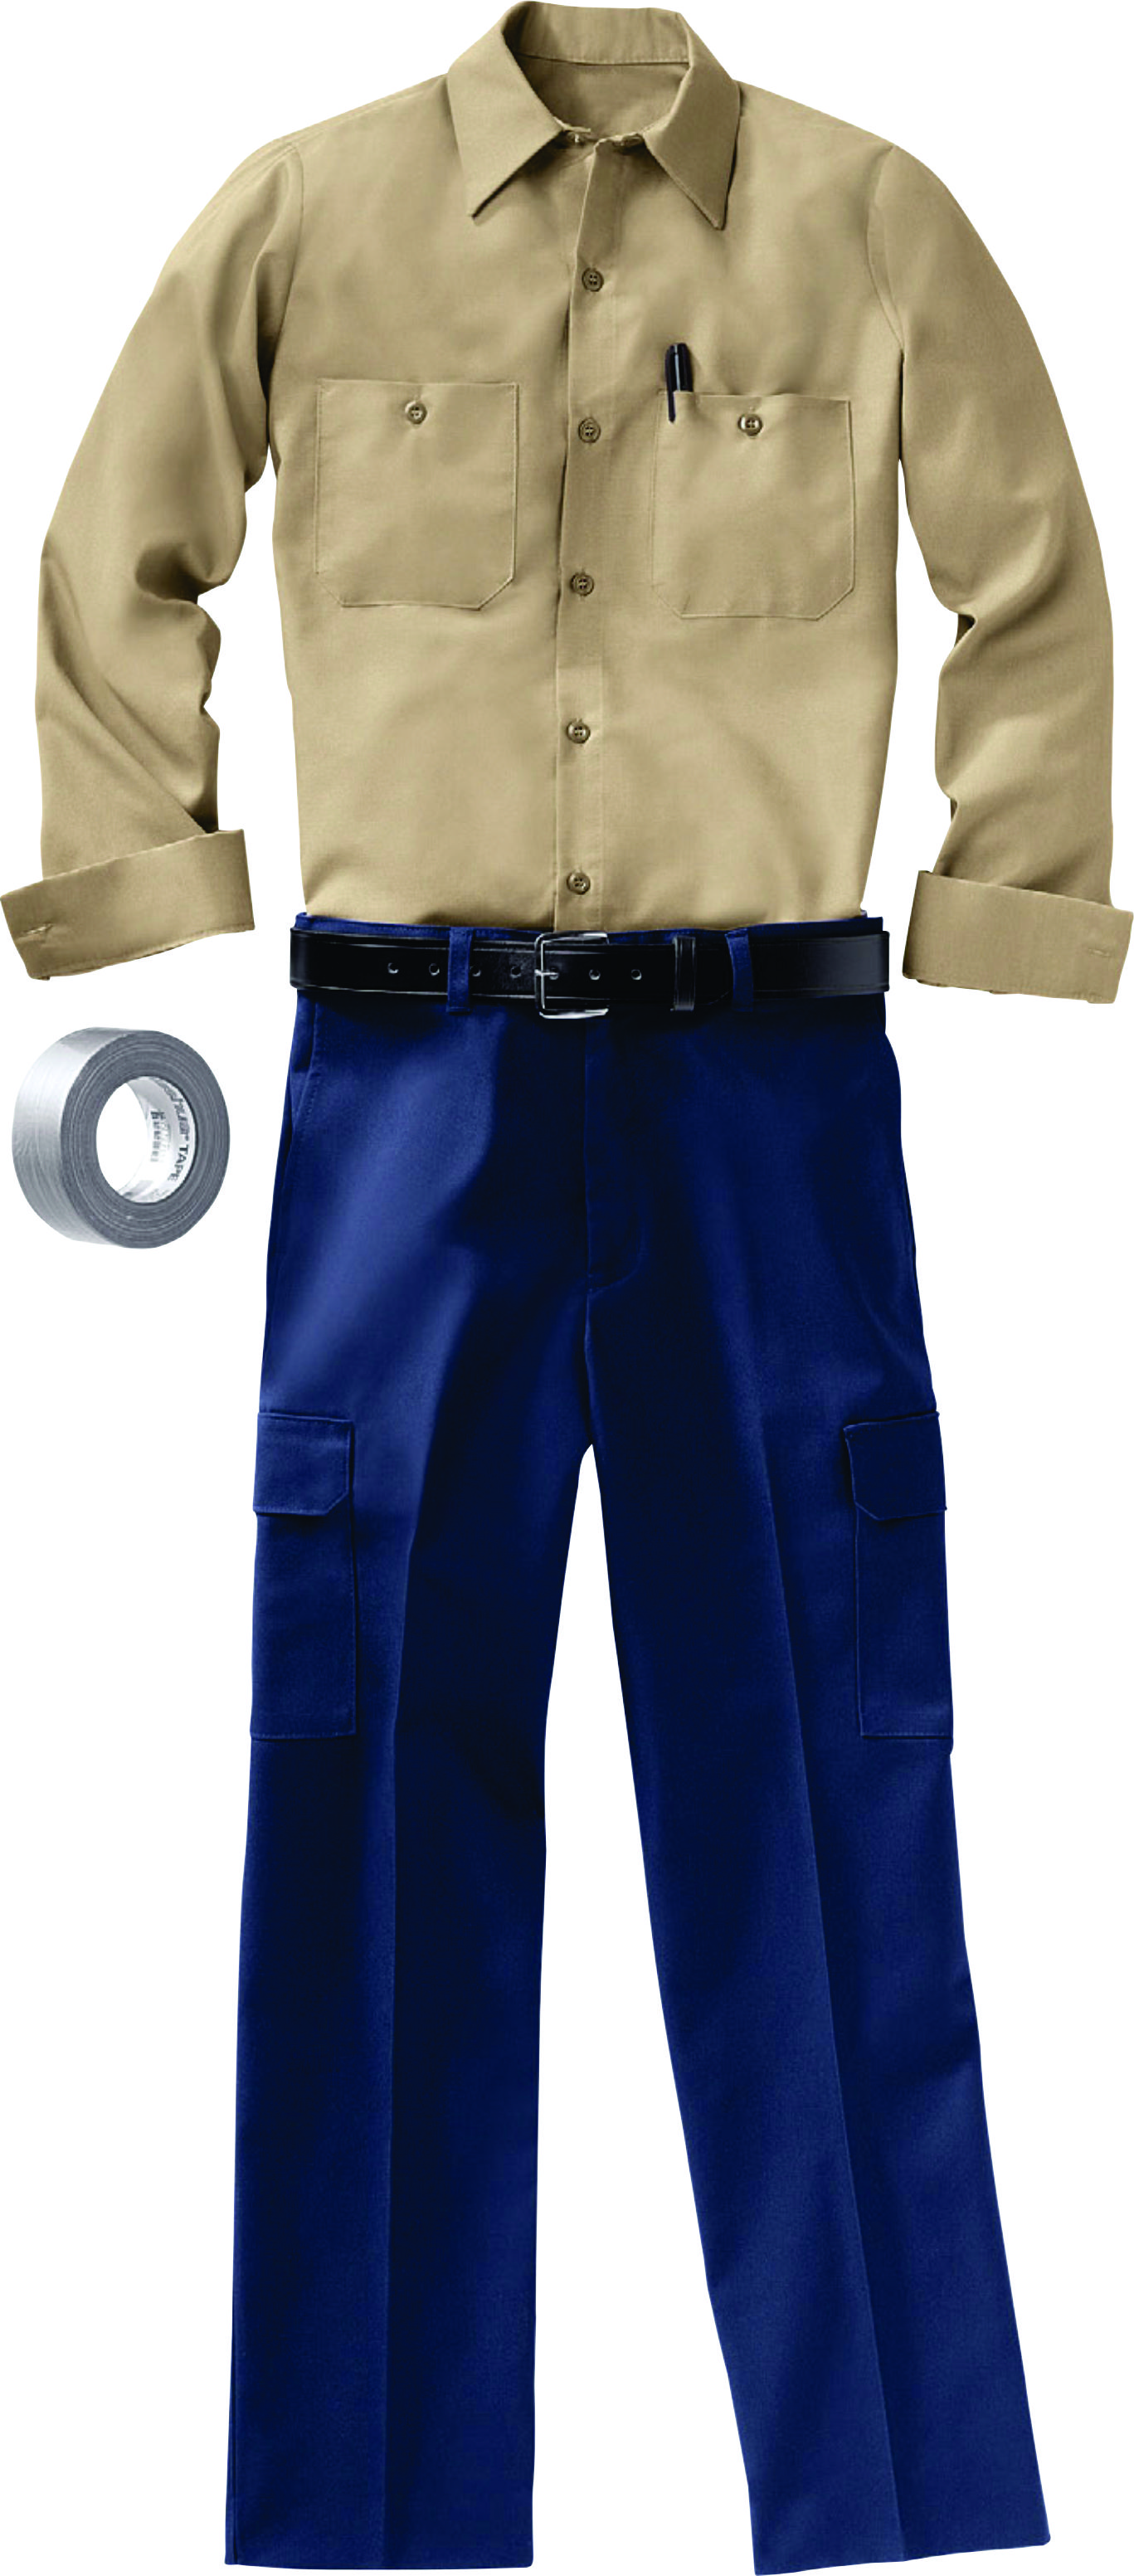 Industry Uniform 4